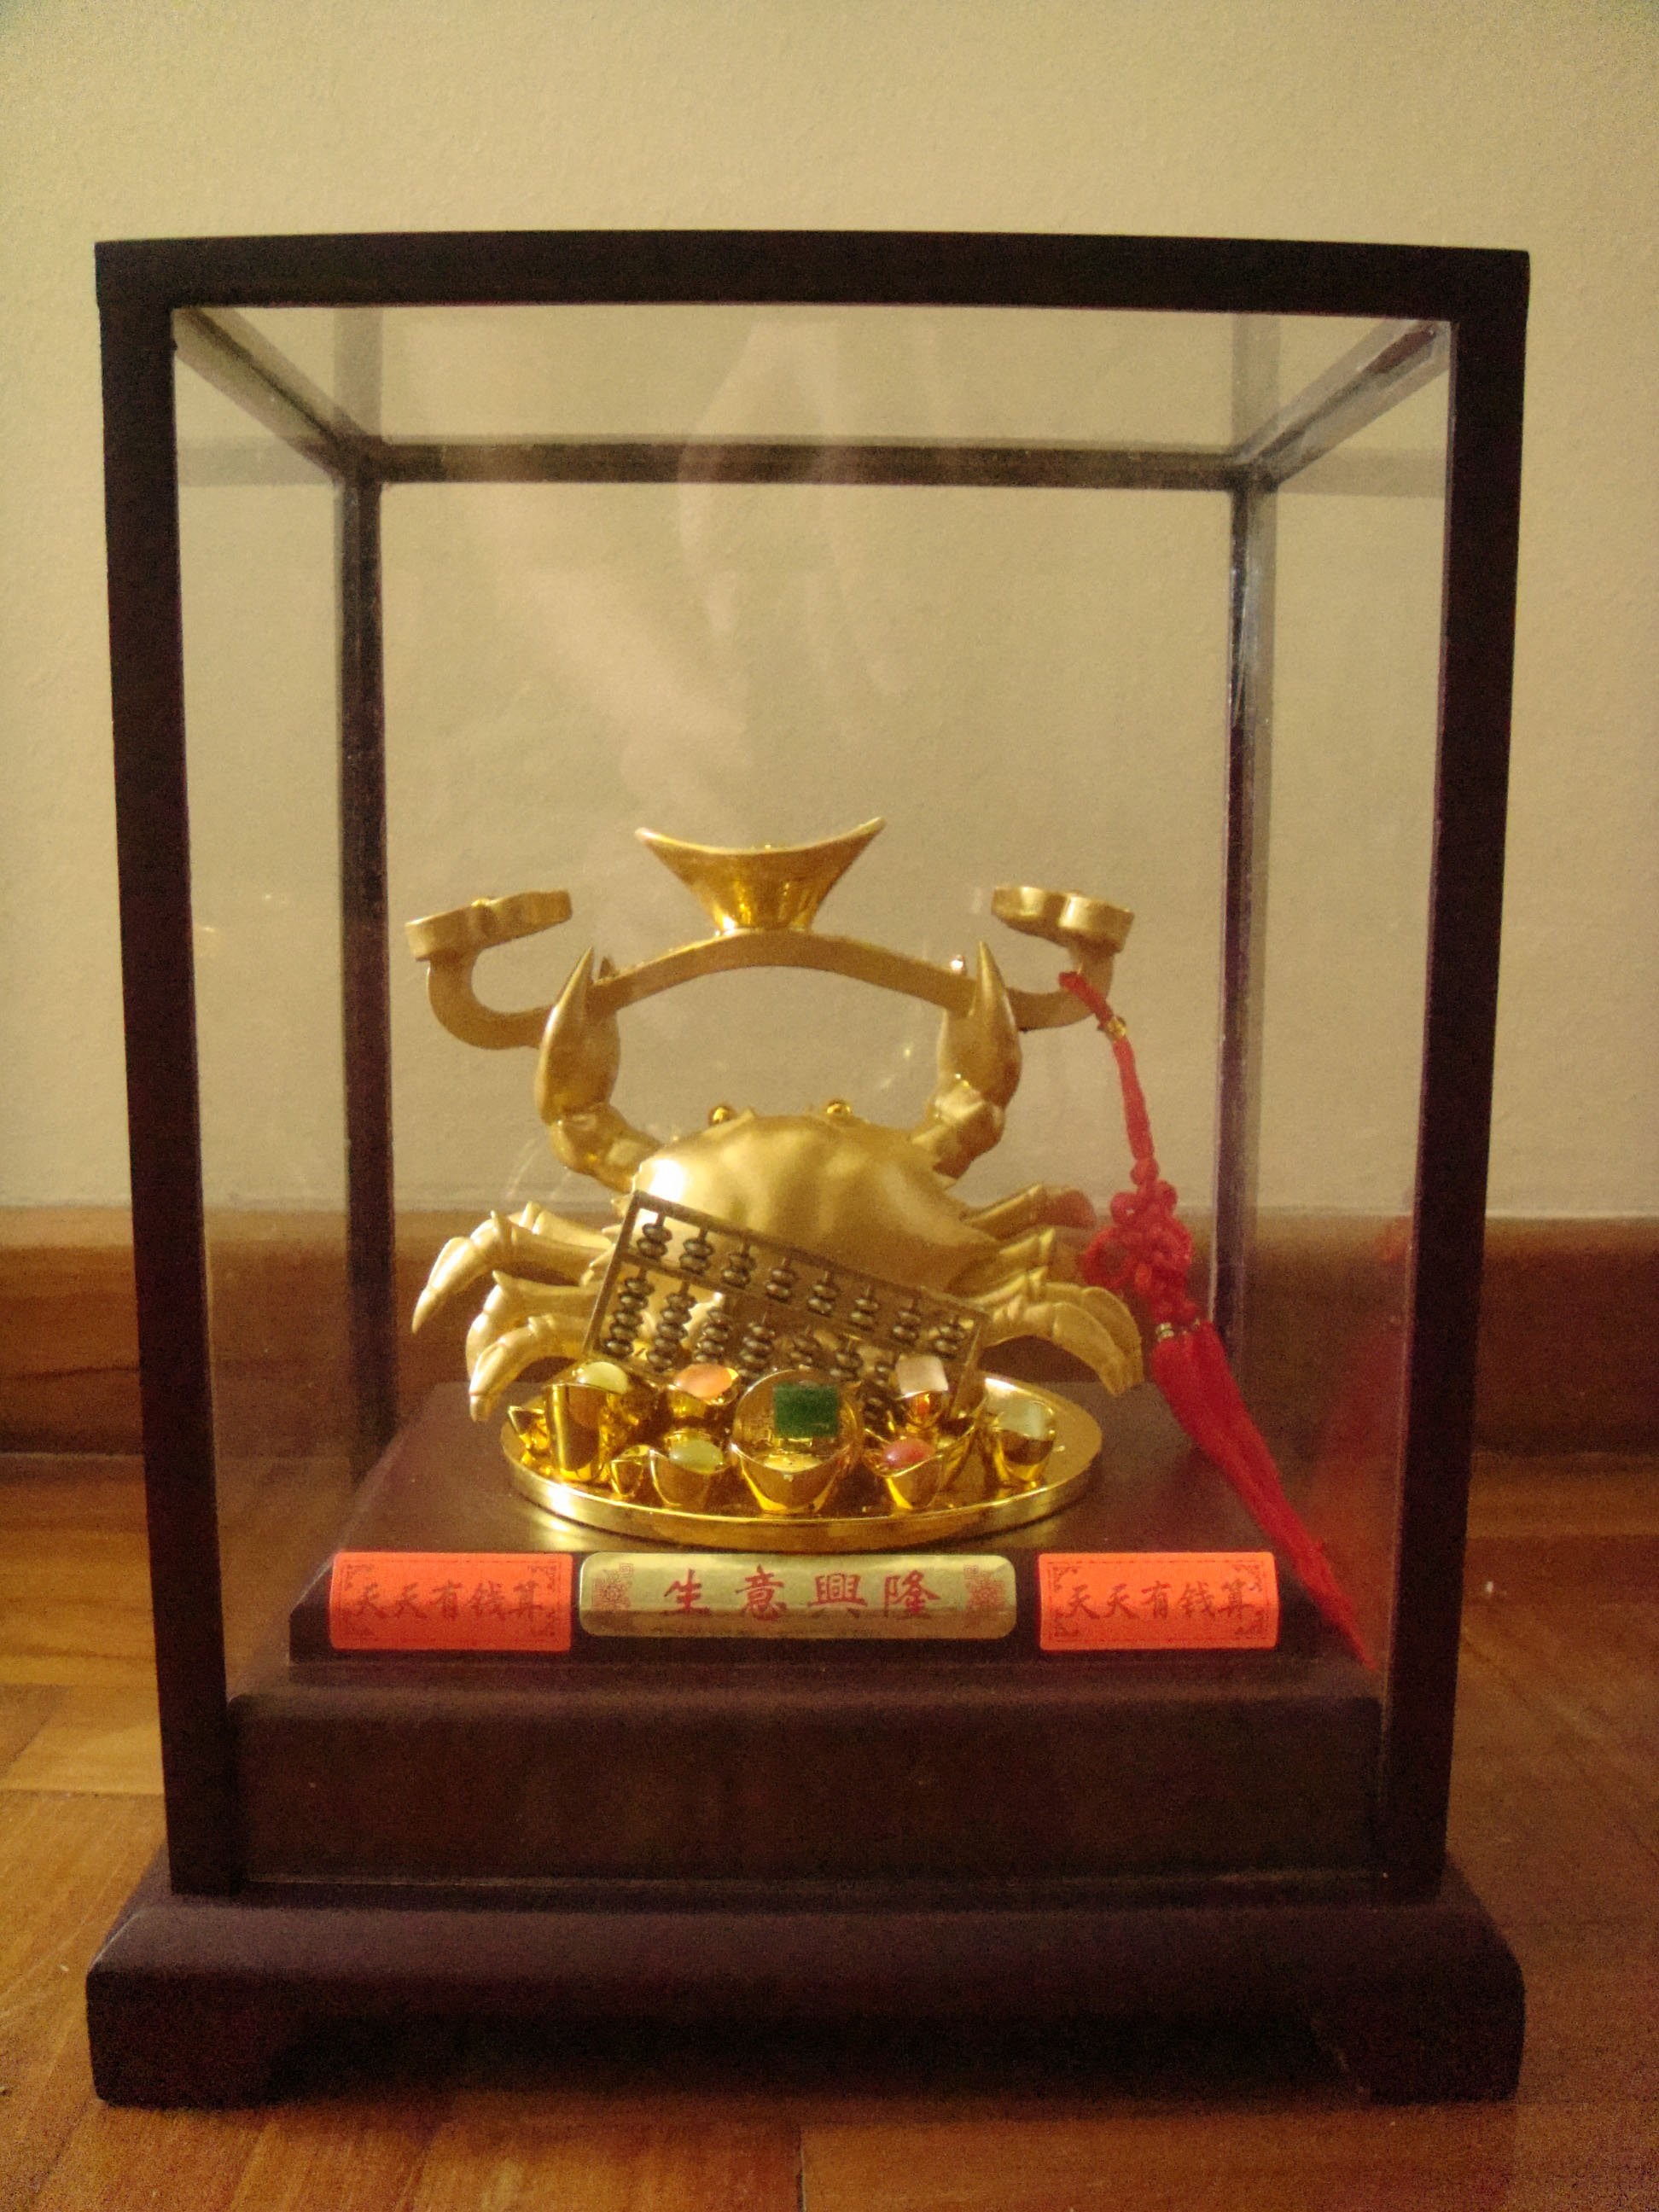 FOR SALE: Golden Crab of Wealth